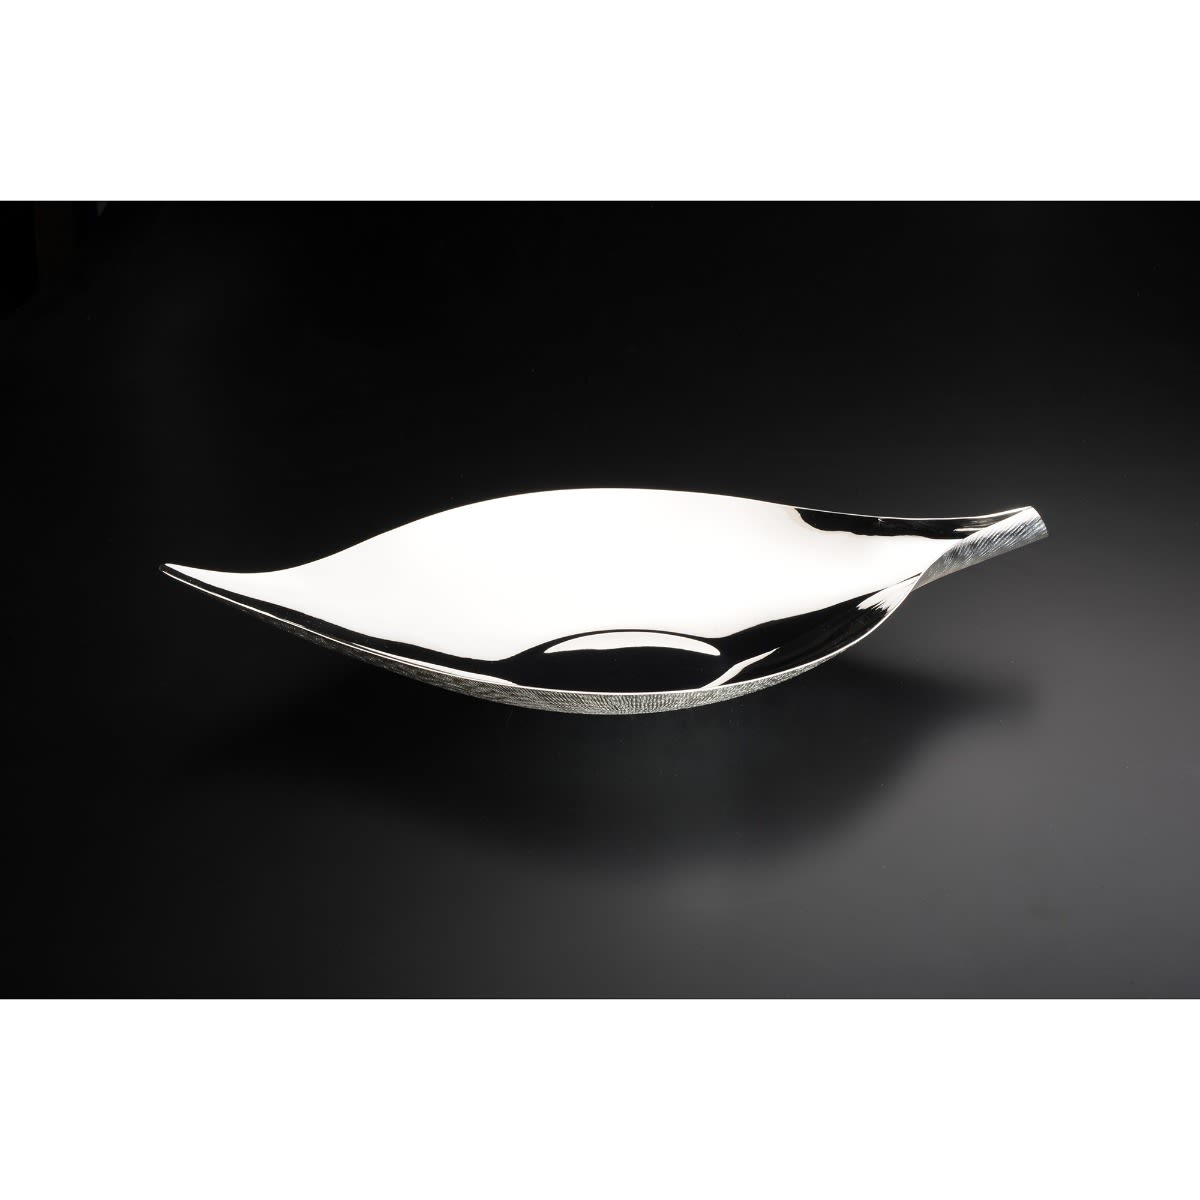 Leaf Bowl - Moulded using expert craftsman techniques, this bowl, as in its name, recalls the curving lines of the leaf. The internal surface is smooth and polished, while the exterior is entirely hammered by hand to create the texture of bark. Thus, the Leaf Bowl manages to interpret the subtle forms and patterns seen in nature in a stylish way that elegantly compliments a modern home.  The result is a piece which radiates the balance and harmony that is felt in a natural environment. Available in Sterling Silver and a silver-plated alloy, it makes it a compelling addition to any interior.  | Matter of Stuff